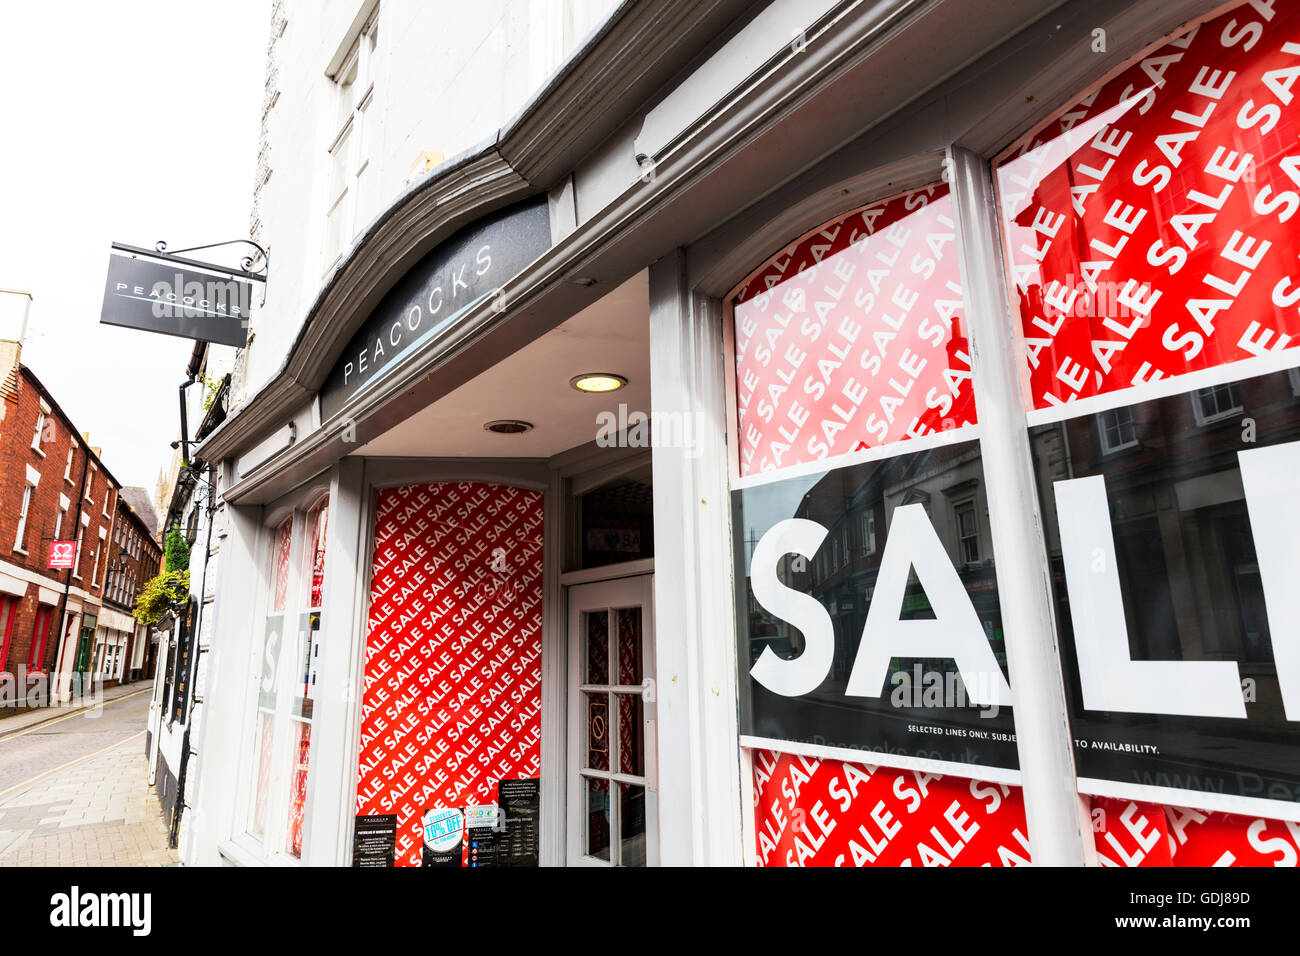 Peacocks clothing chain store shop shops sign sale sales high street clothes shop UK England building exterior front - Stock Image